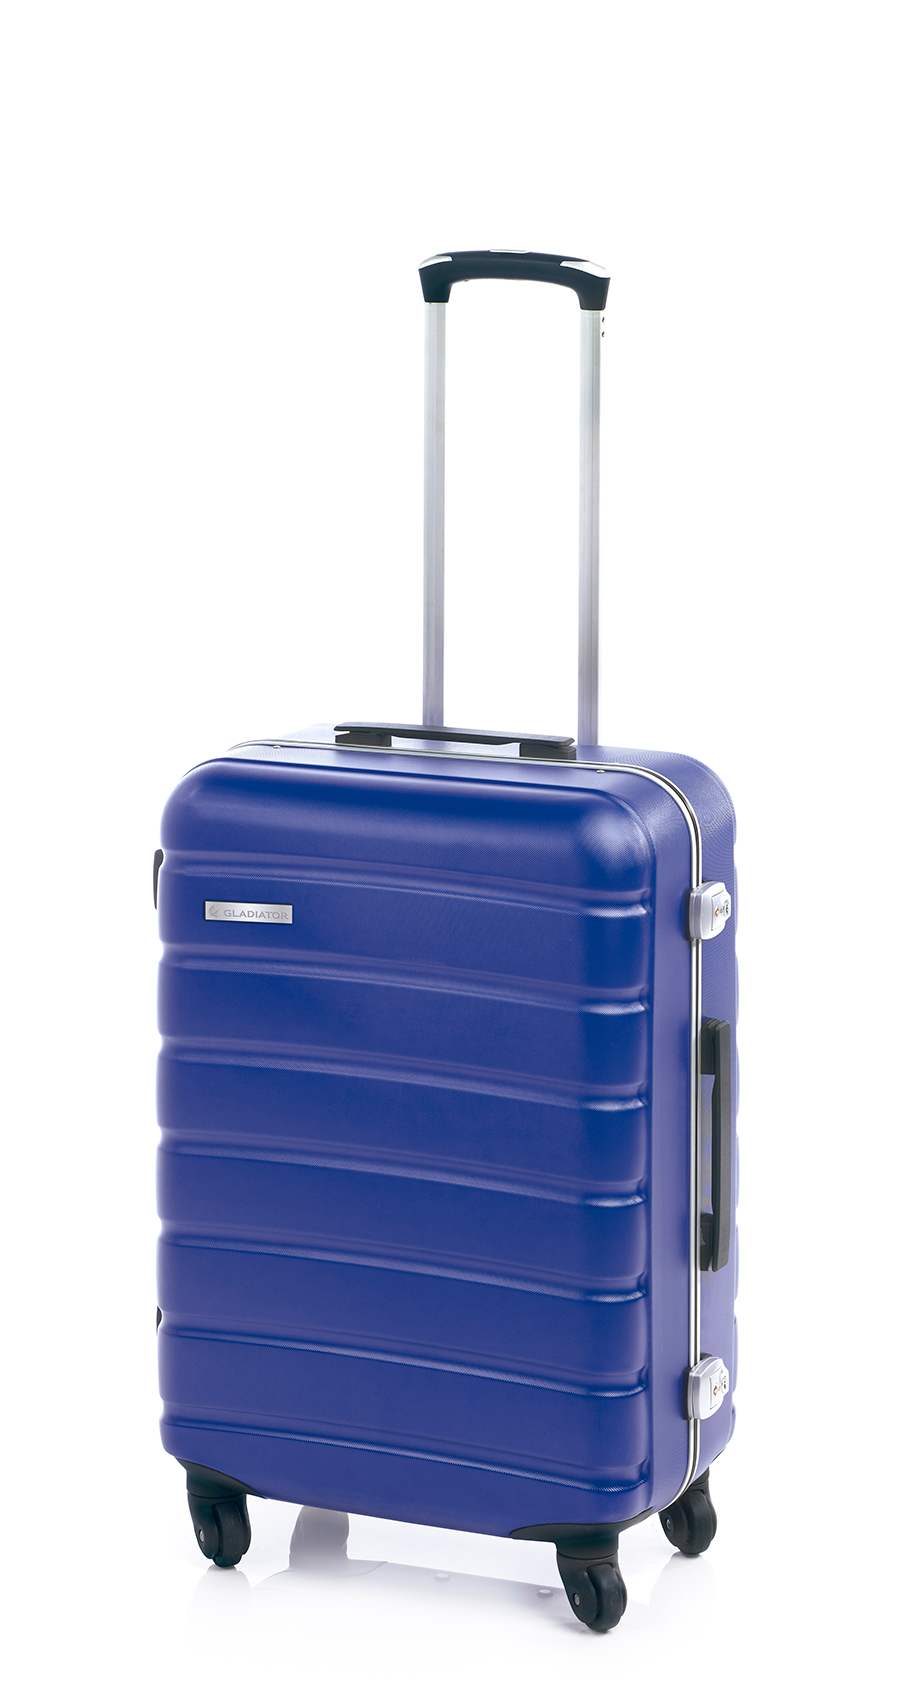 Best Luggage For Business Travel